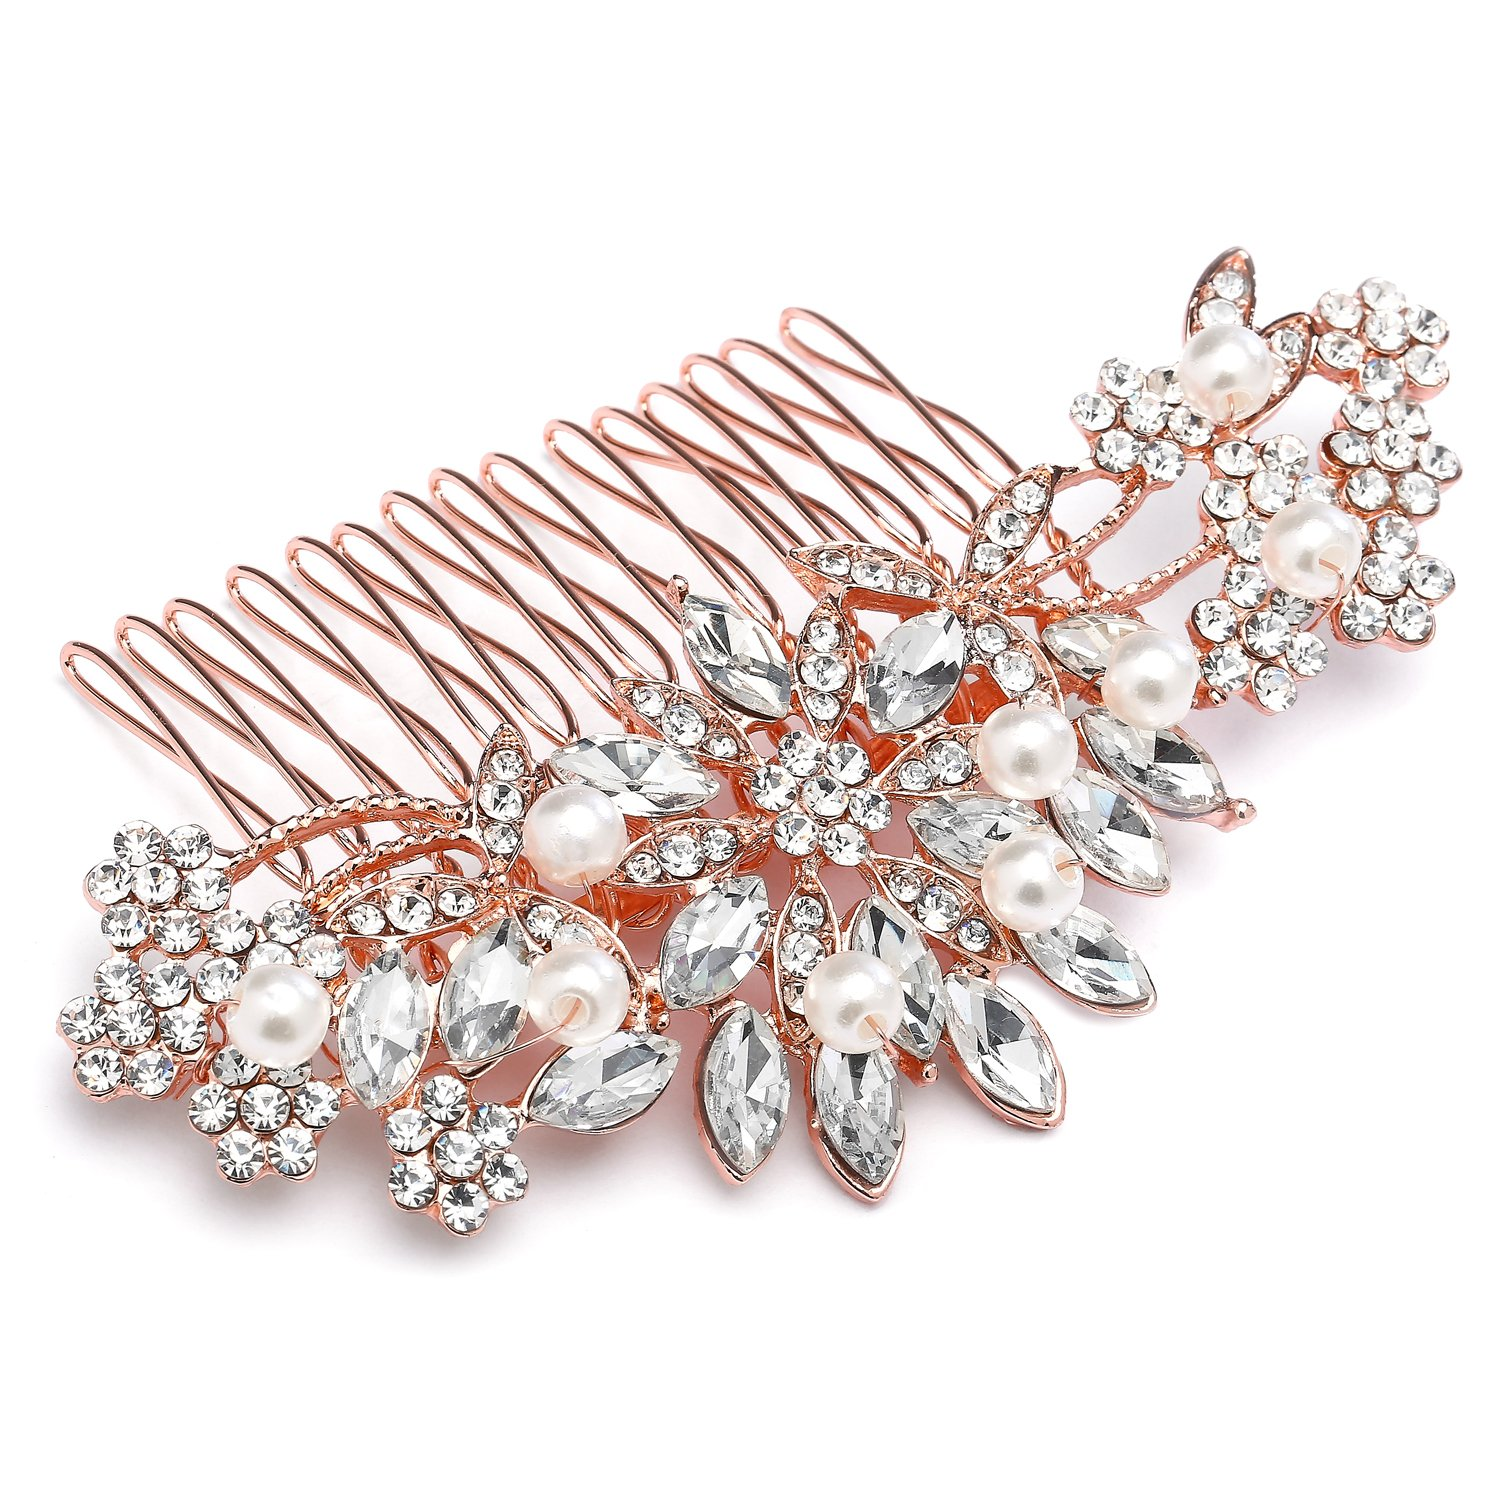 Mariell Vintage Rose Gold Bridal Hair Comb Simulated Pearl Crystal Wedding Hair Accessories by Mariell